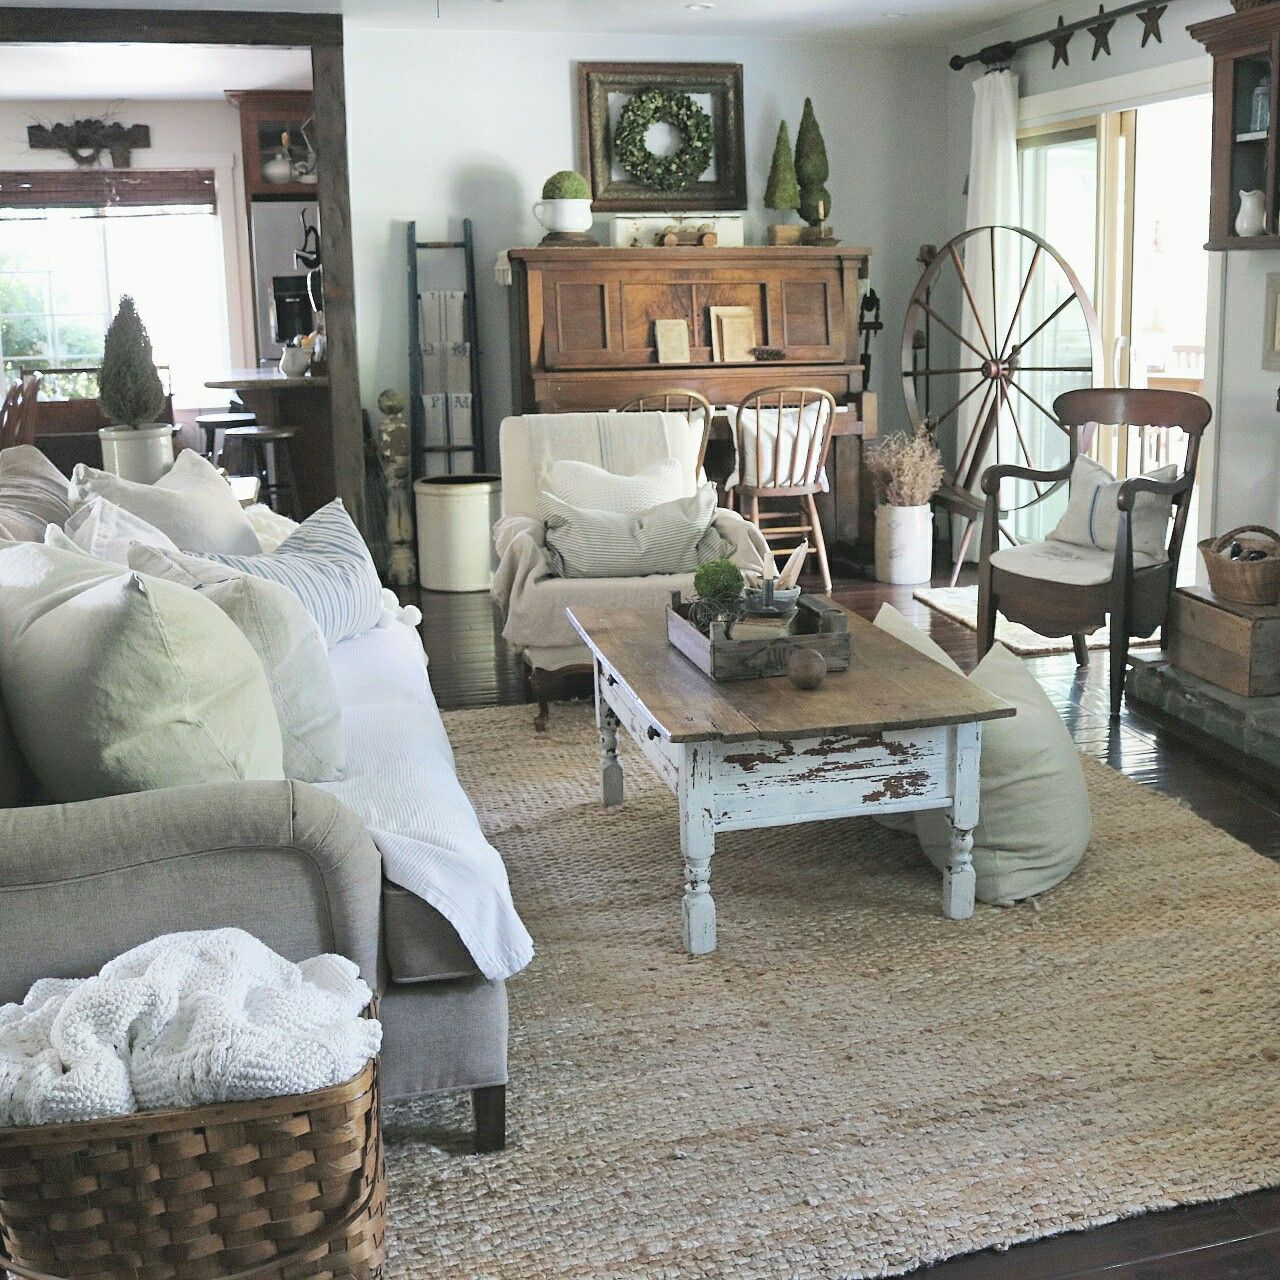 Farmhouse Living Room at home on SweetCreek Decoration